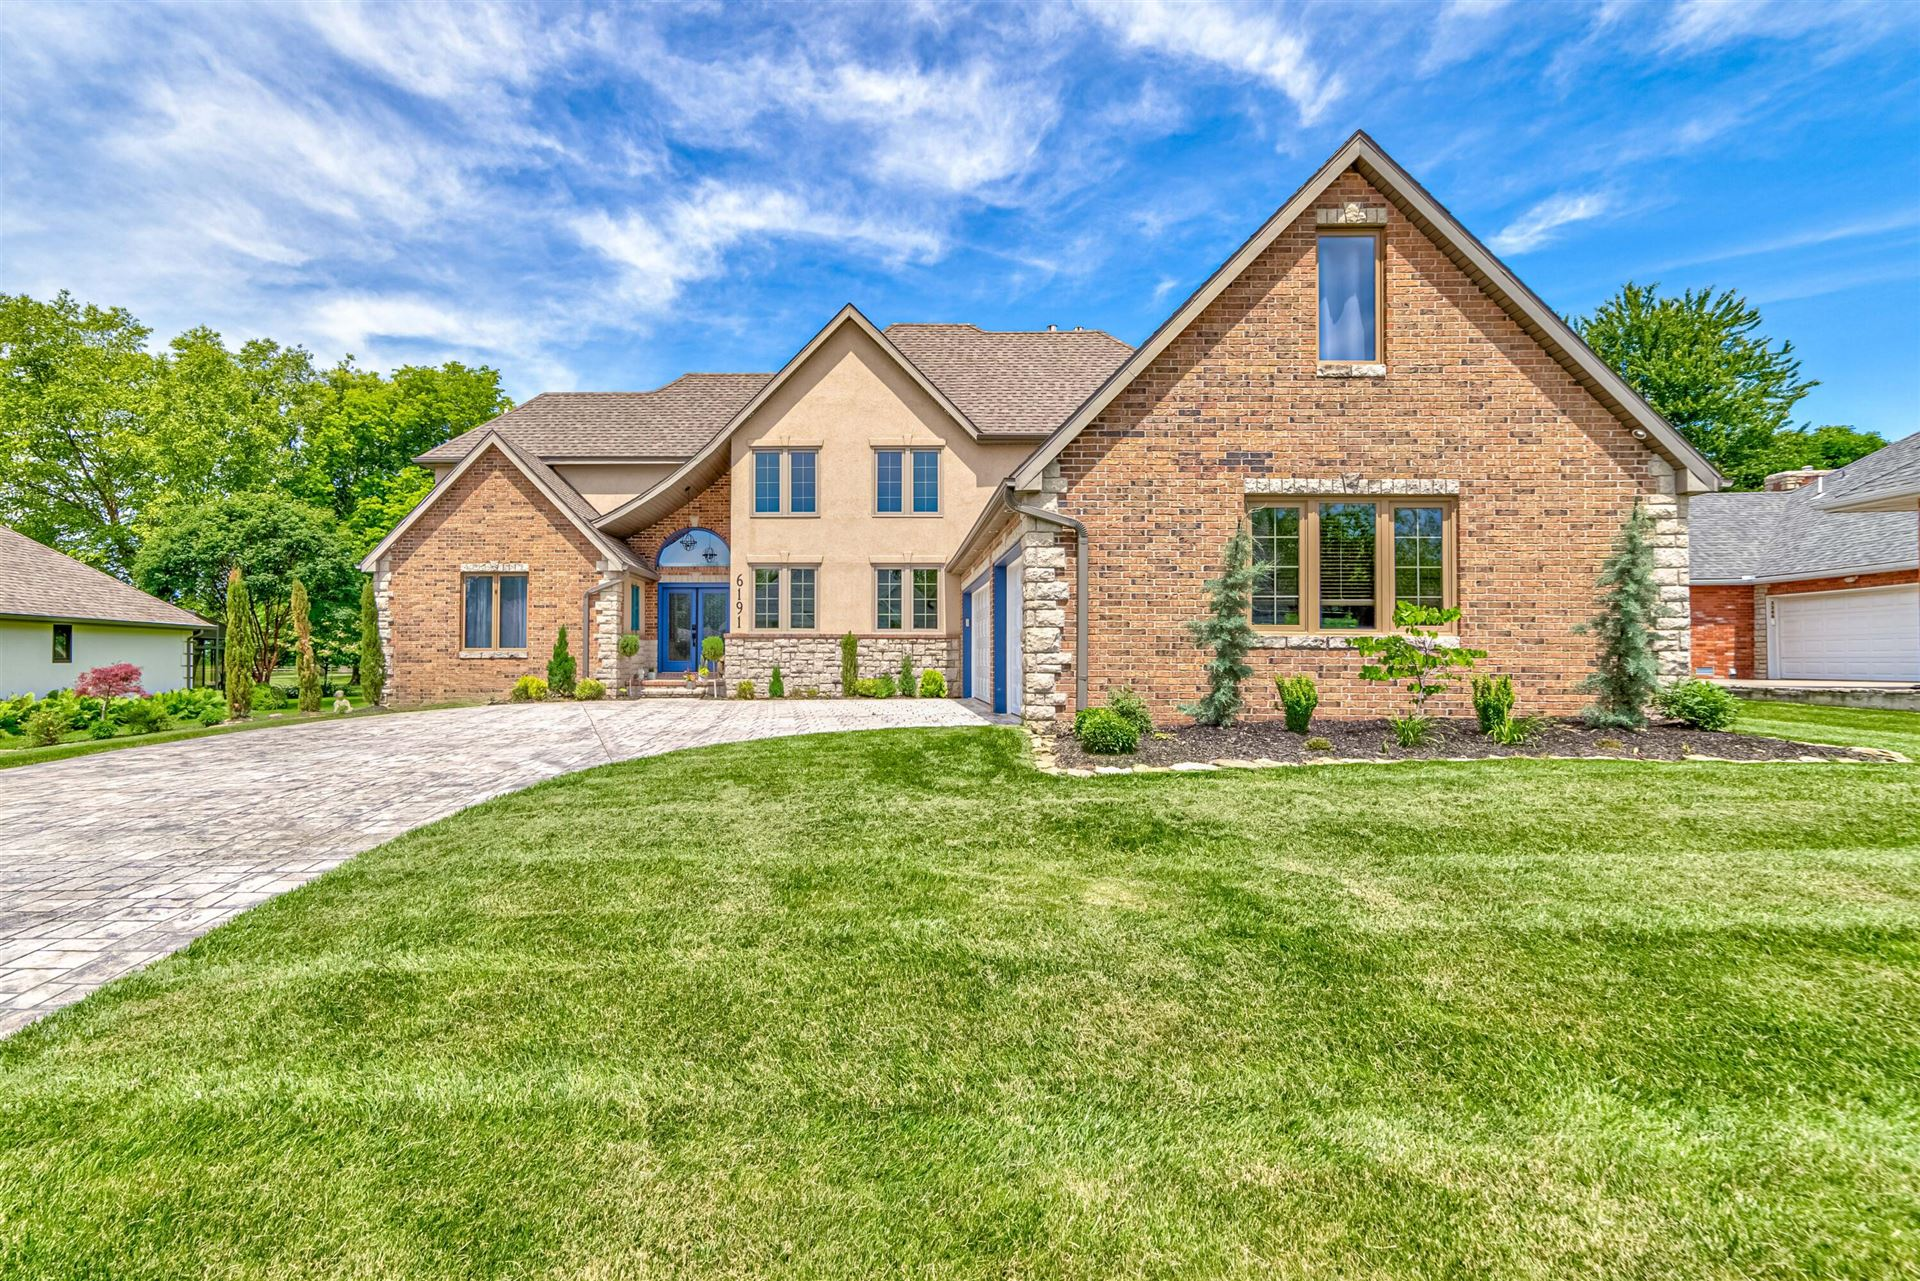 Photo of 6191 South Meadowview Drive, Ozark, MO 65721 (MLS # 60192403)